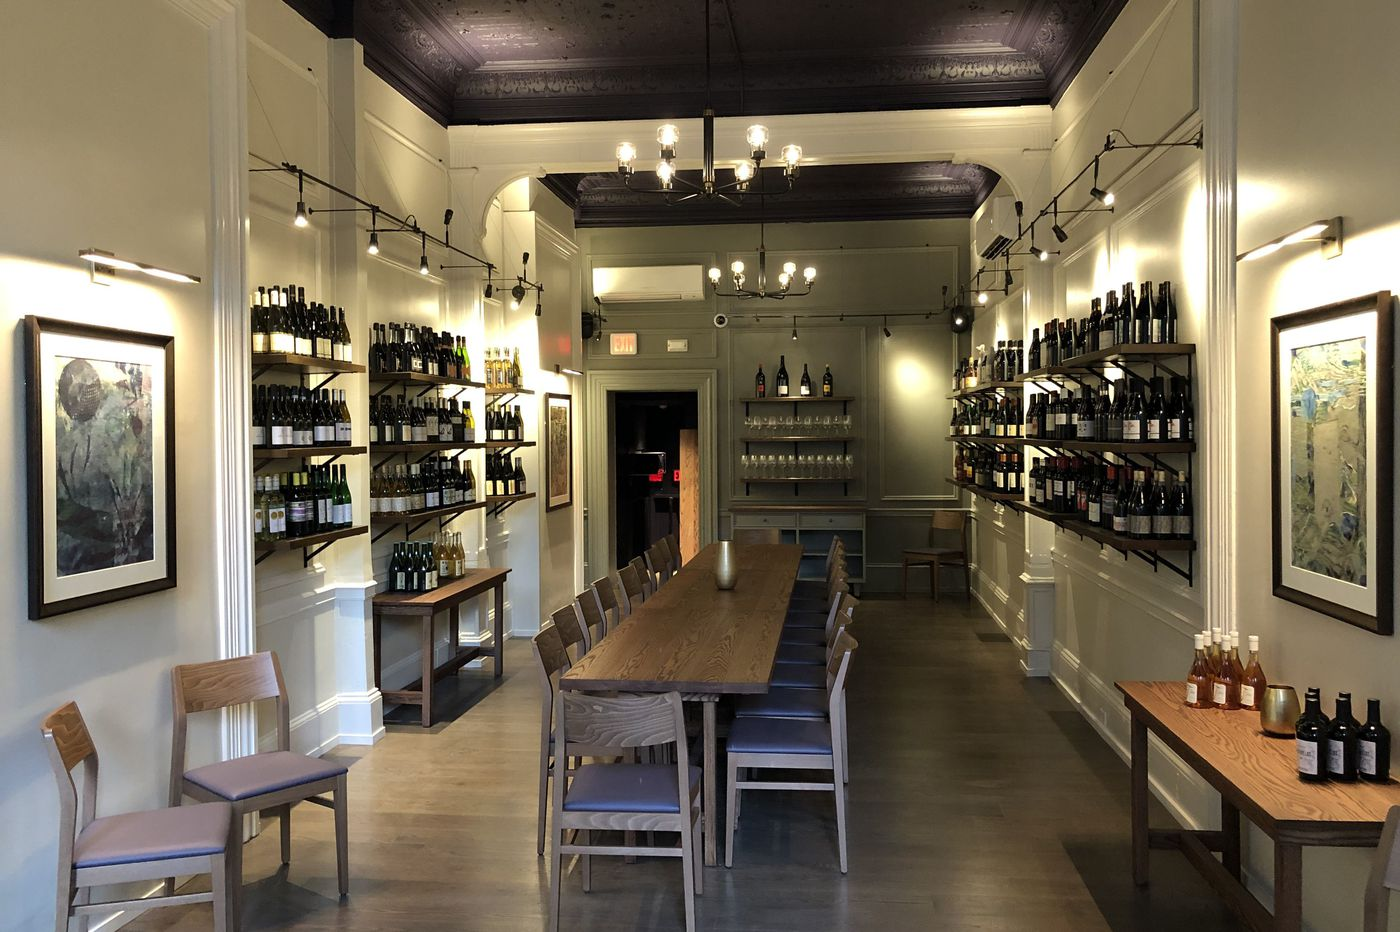 Vernick opens Vernick Wine, a bottle shop and private dining room, next door on Walnut Street